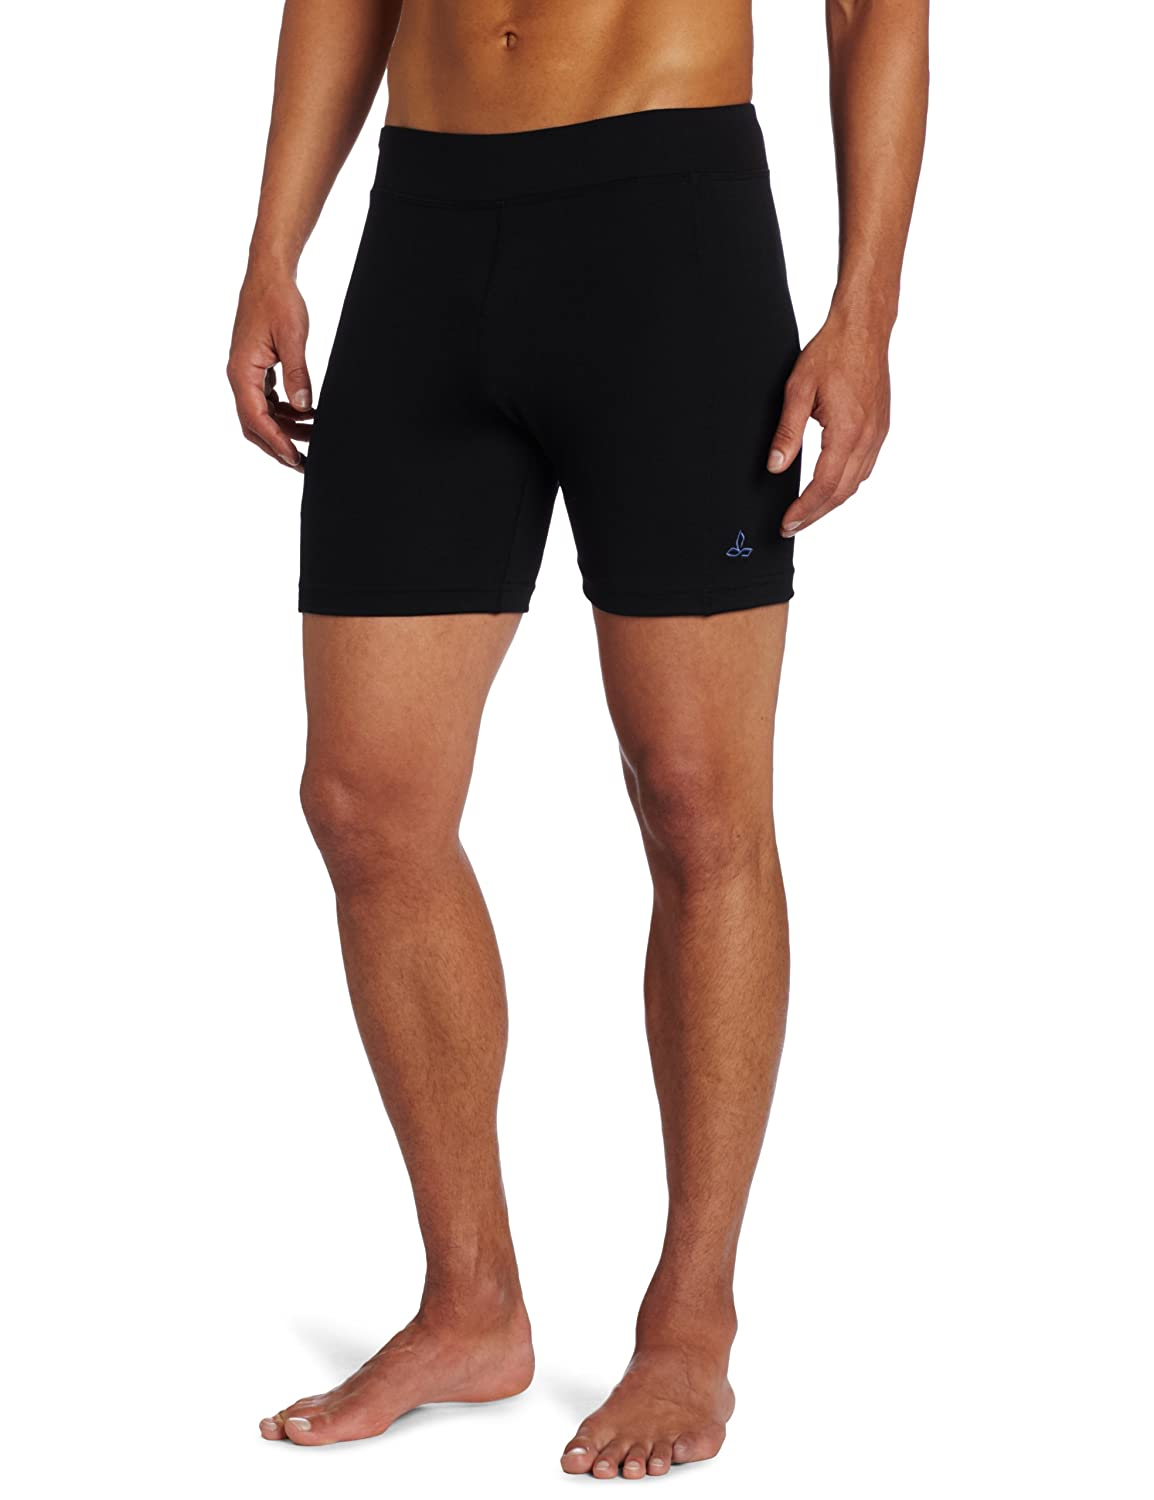 prAna Men's JD Short prAna Men' s JD Short Prana Sports Apparel M3JDSH